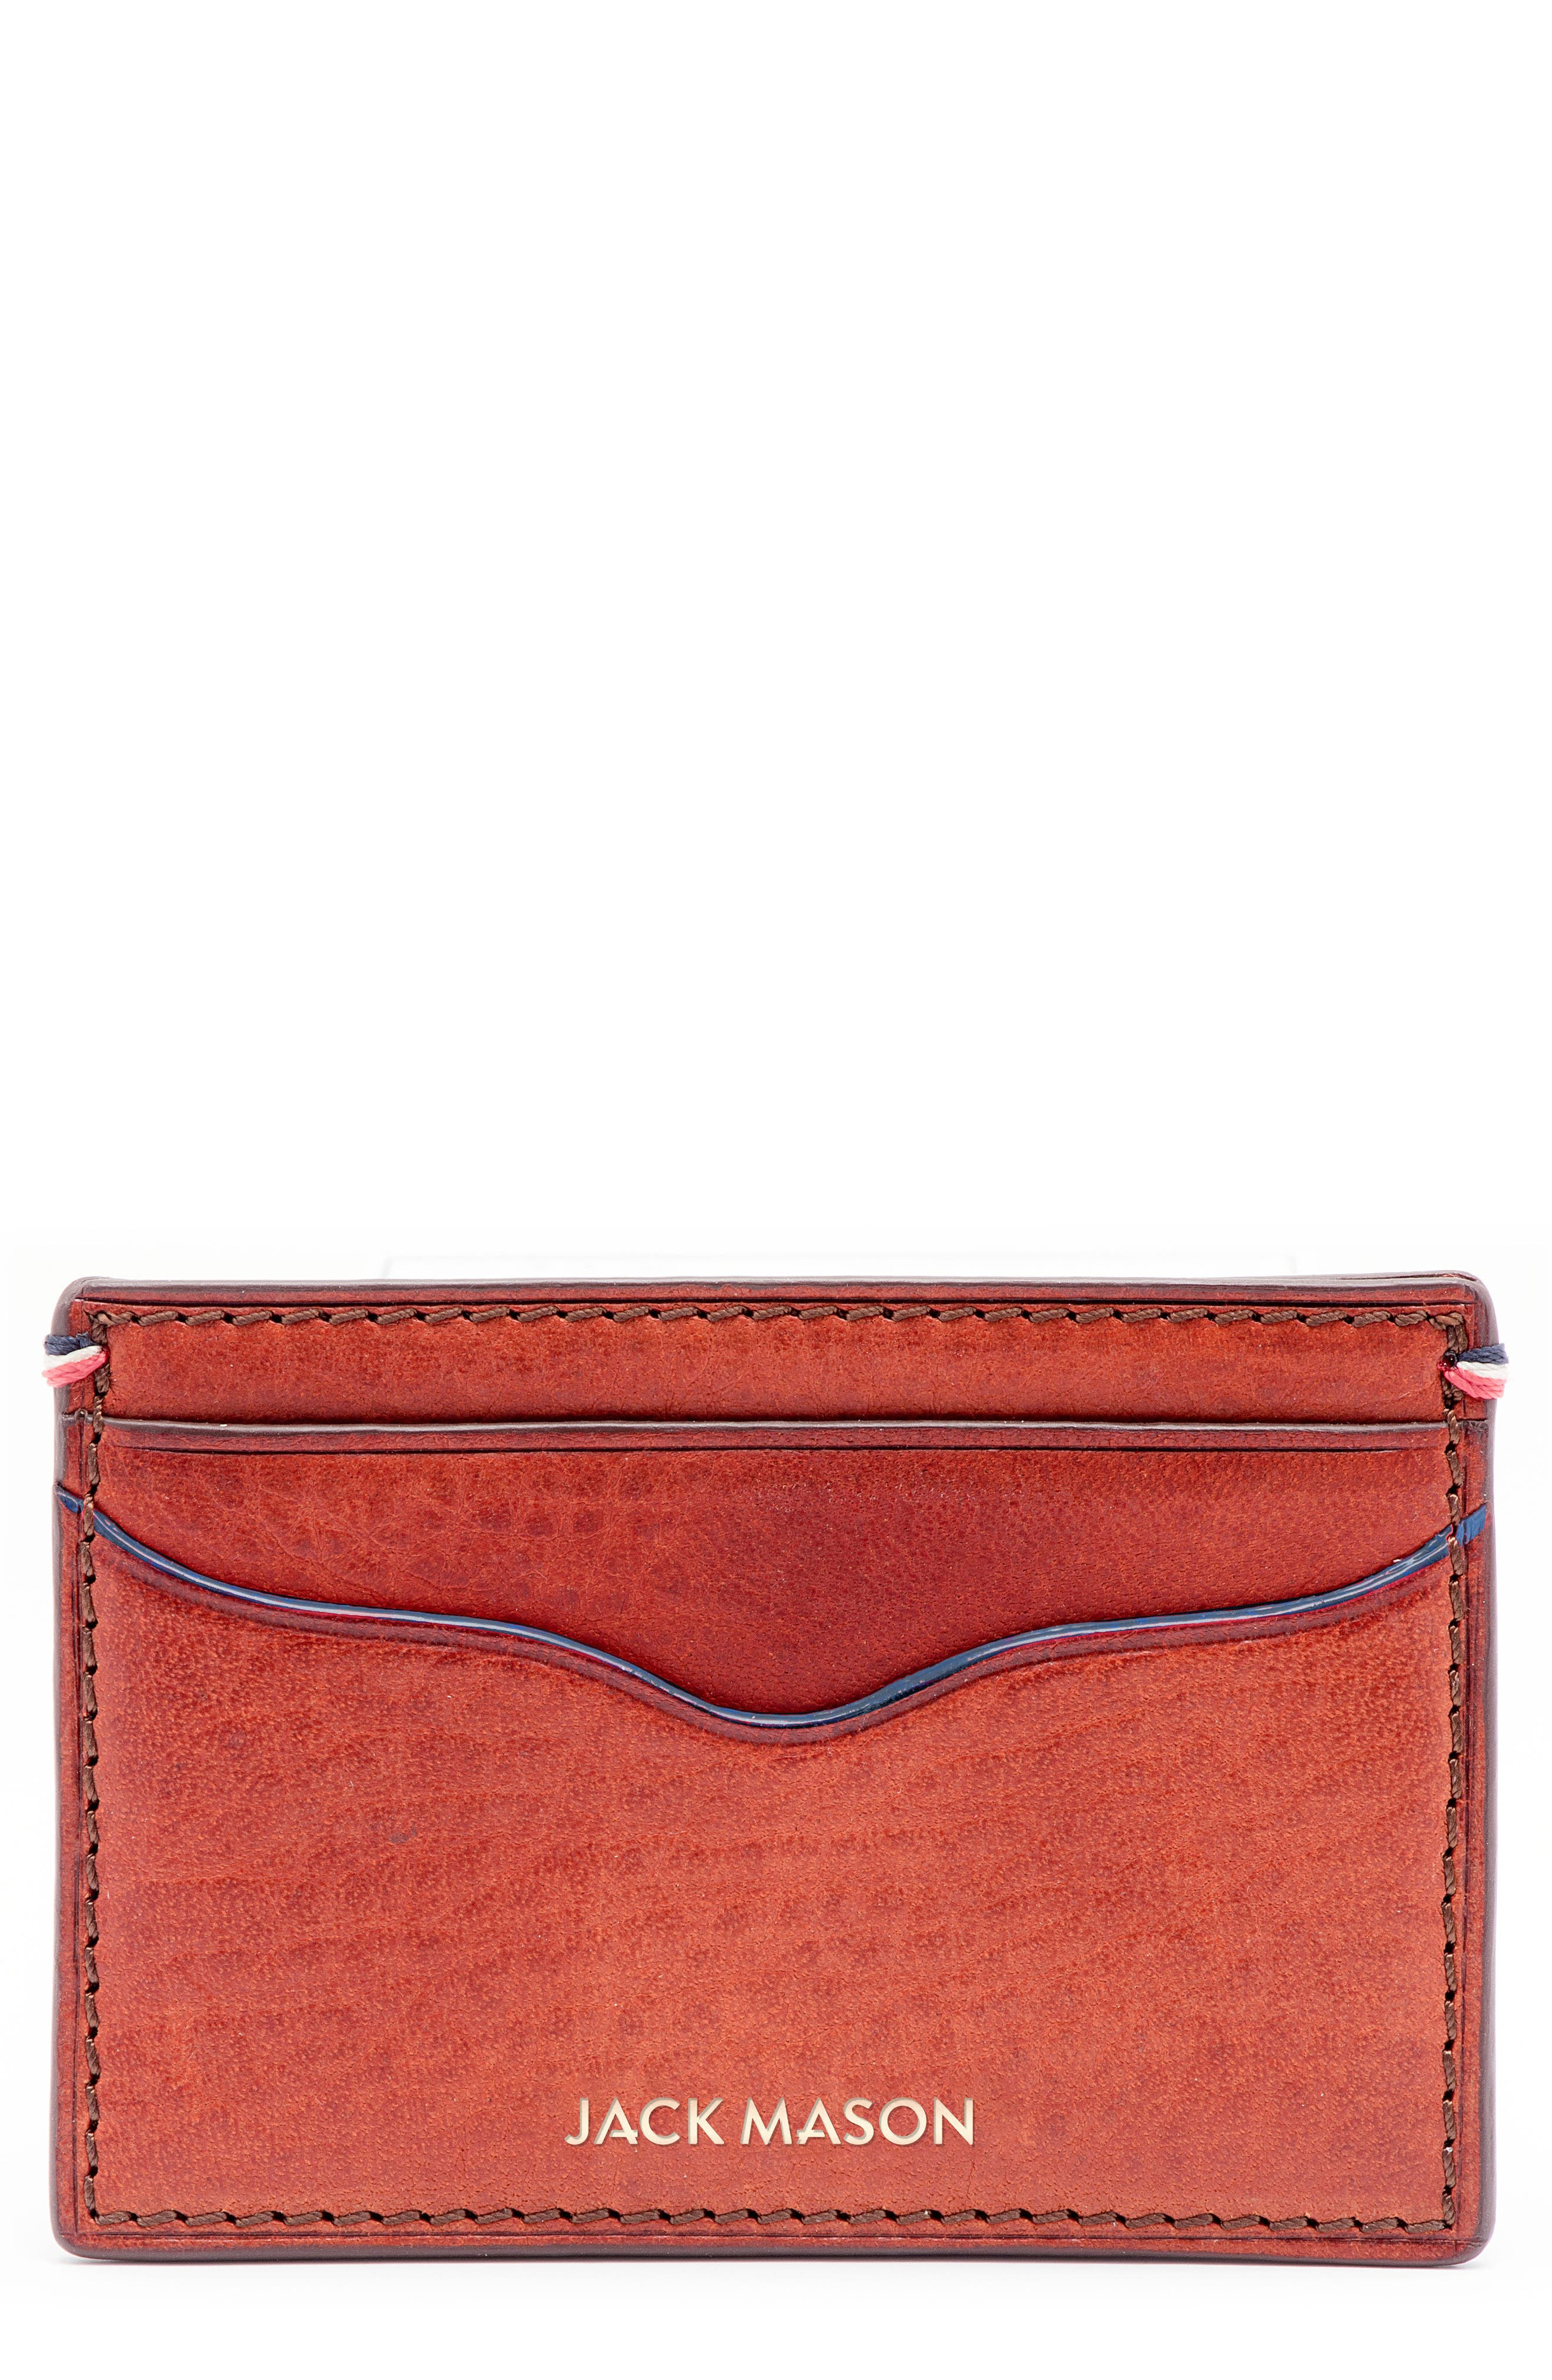 Pebbled Leather Card Case,                             Main thumbnail 1, color,